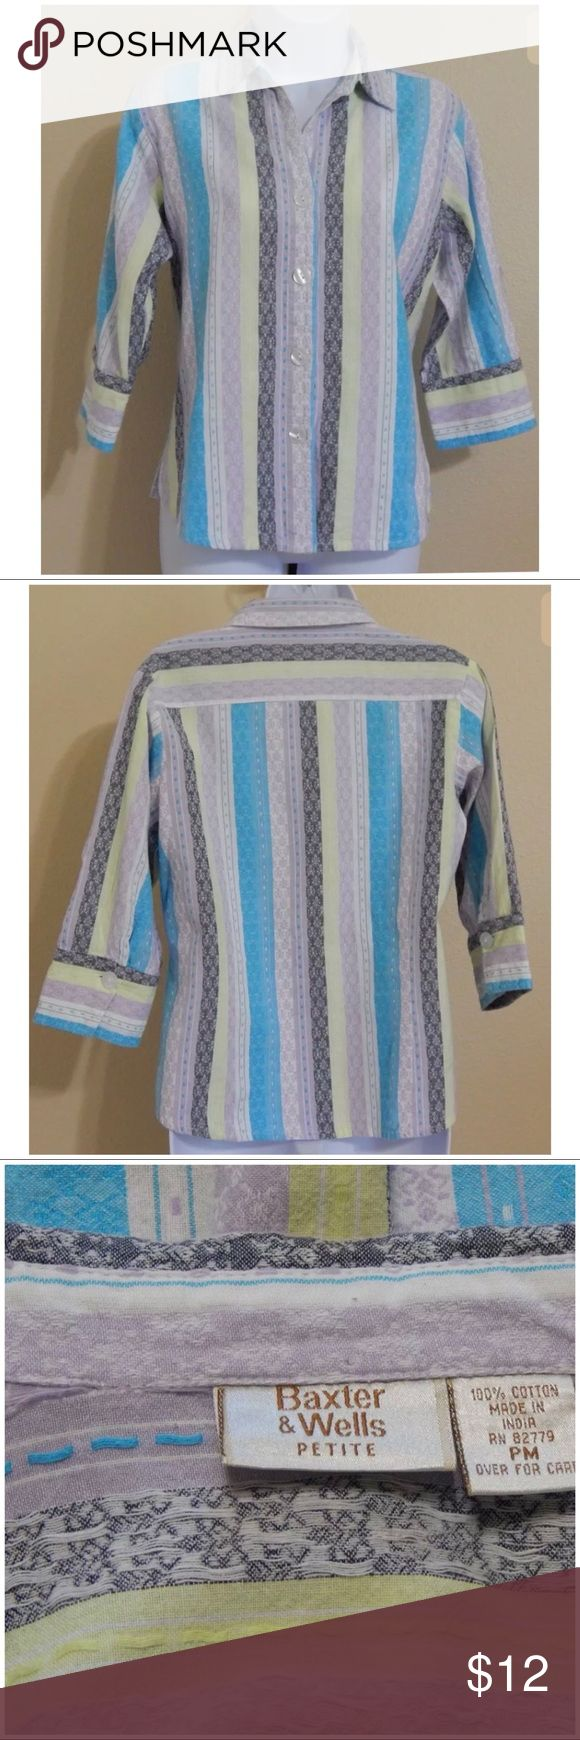 "Baxter & Wells Petite Shirt Size PM Baxter & Wells Petite Women's Shirt  Multi color pastel striped 3/4 sleeve Size PM 20"" approx armpit to armpit 24"" approx length 15"" approx shoulder width Baxter & Wells Tops Button Down Shirts"